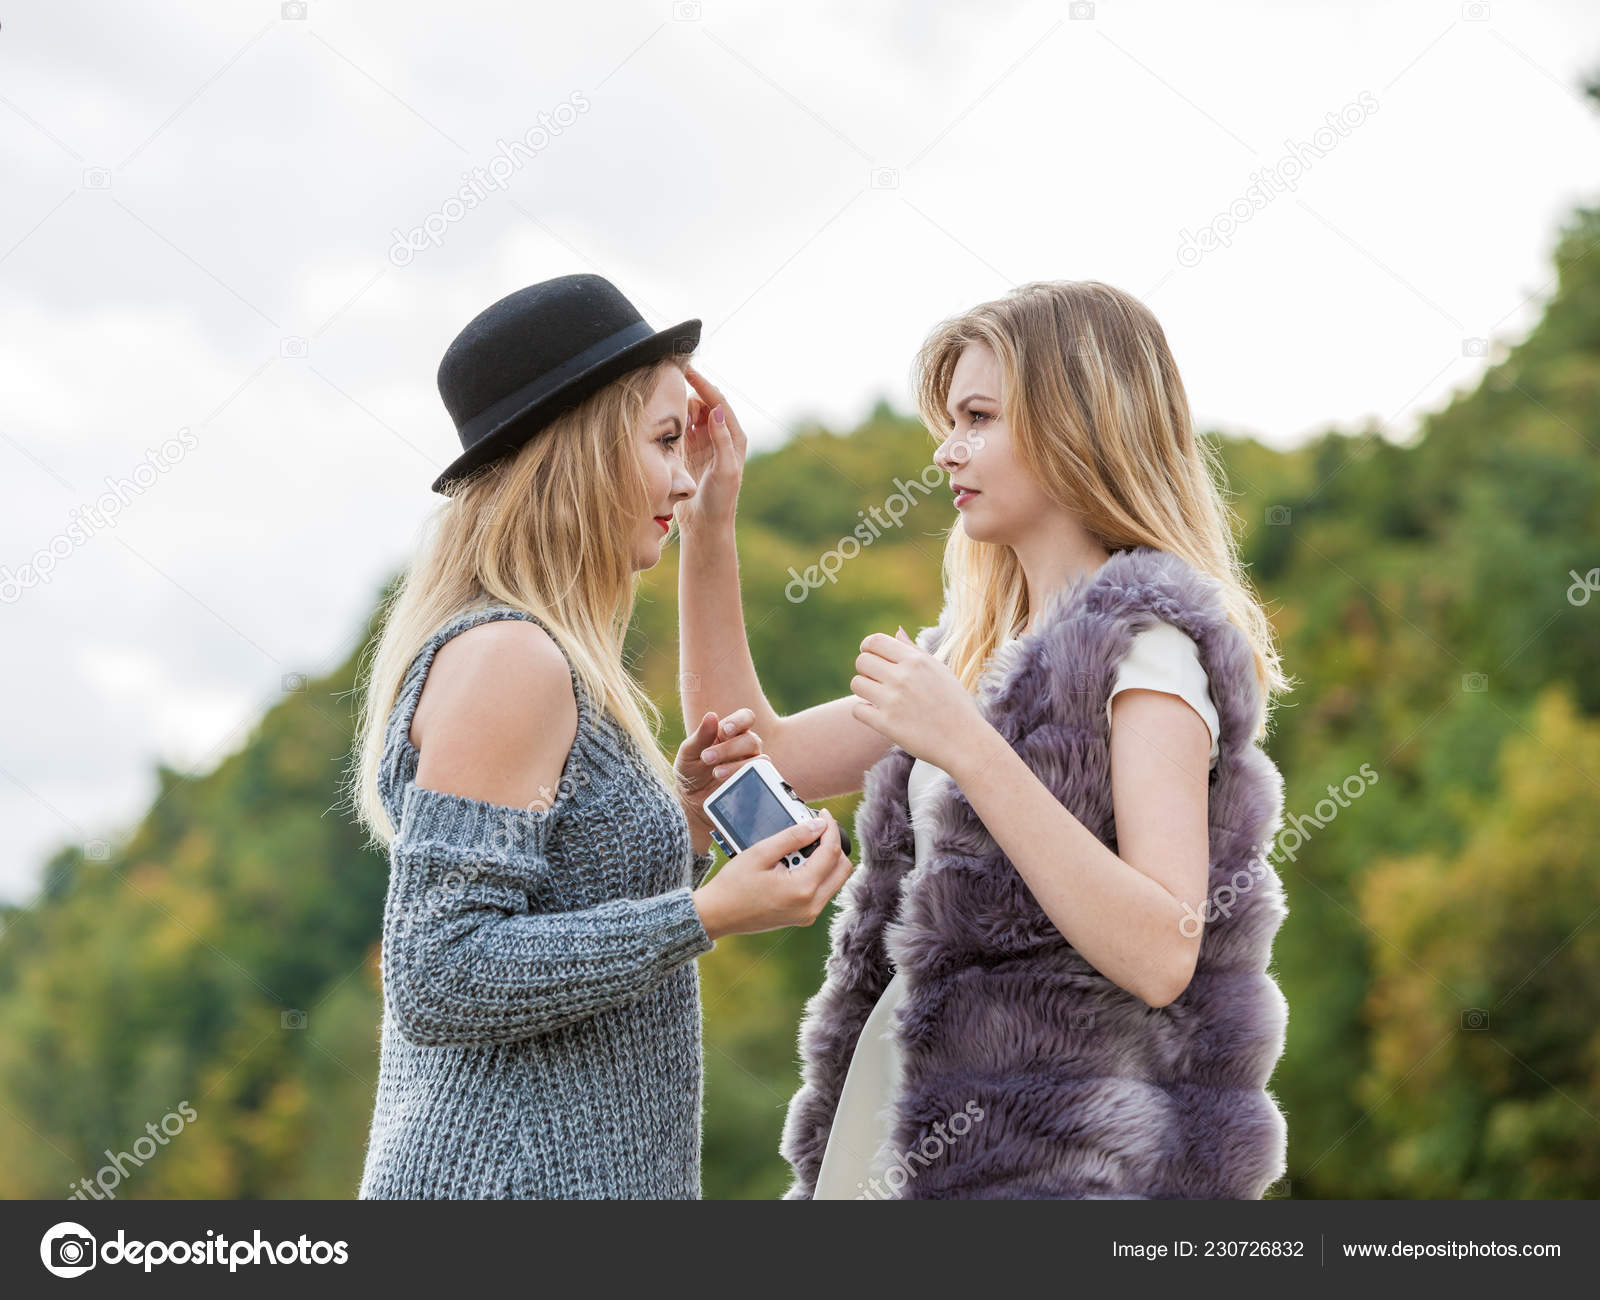 Scenes Photo Shoot Two Females Friends Having Fun Outdoor Photo Stock Photo Image By C Anetlanda 230726832 Best friends shoot best friend poses cute friends photoshoot friends poses with friends photos bff friend 50+ ideas for photography friends photo shoots bestfriends #photography. depositphotos